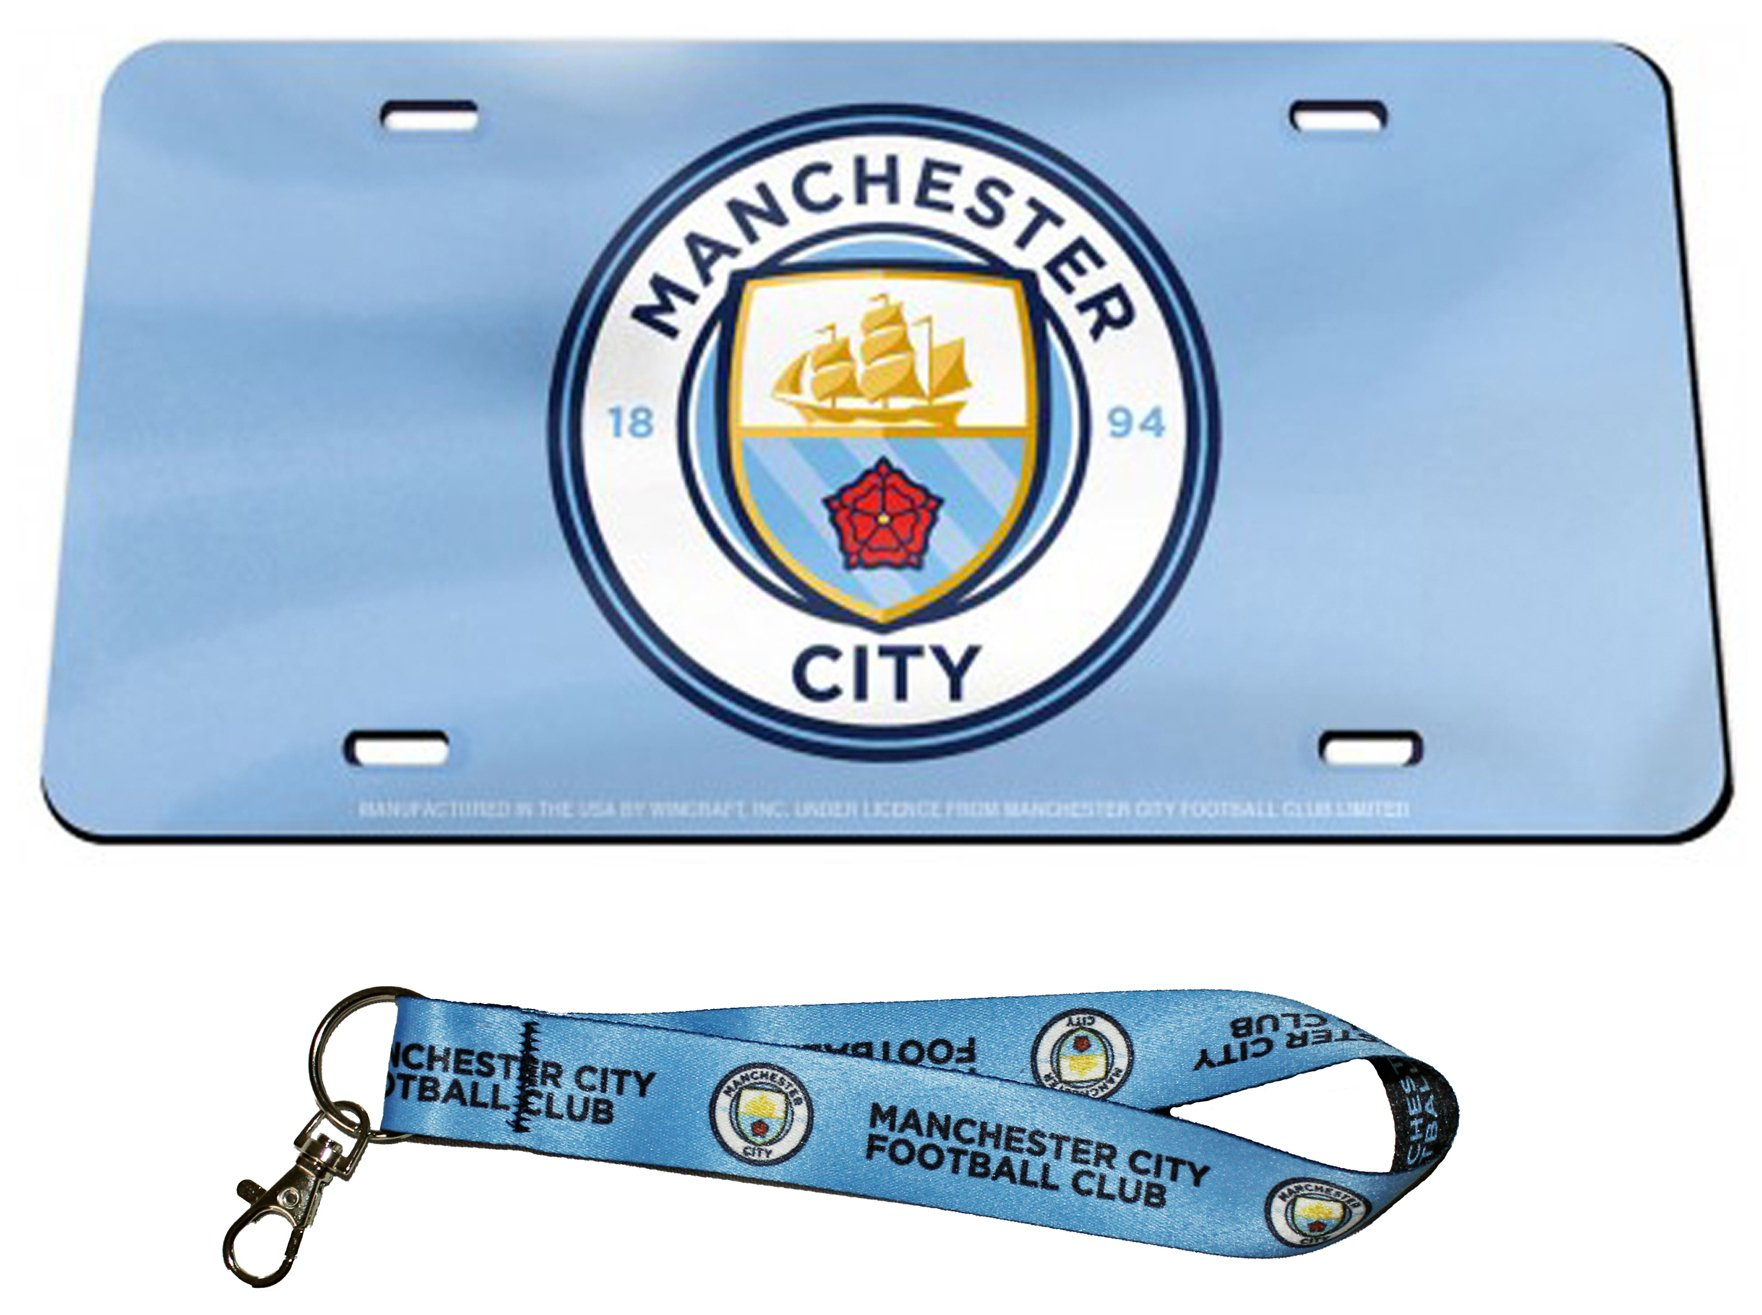 WinCraft Bundle 2 Items: Manchester City FC 1 Premium License Plate and 1 Key Strap Key Chain